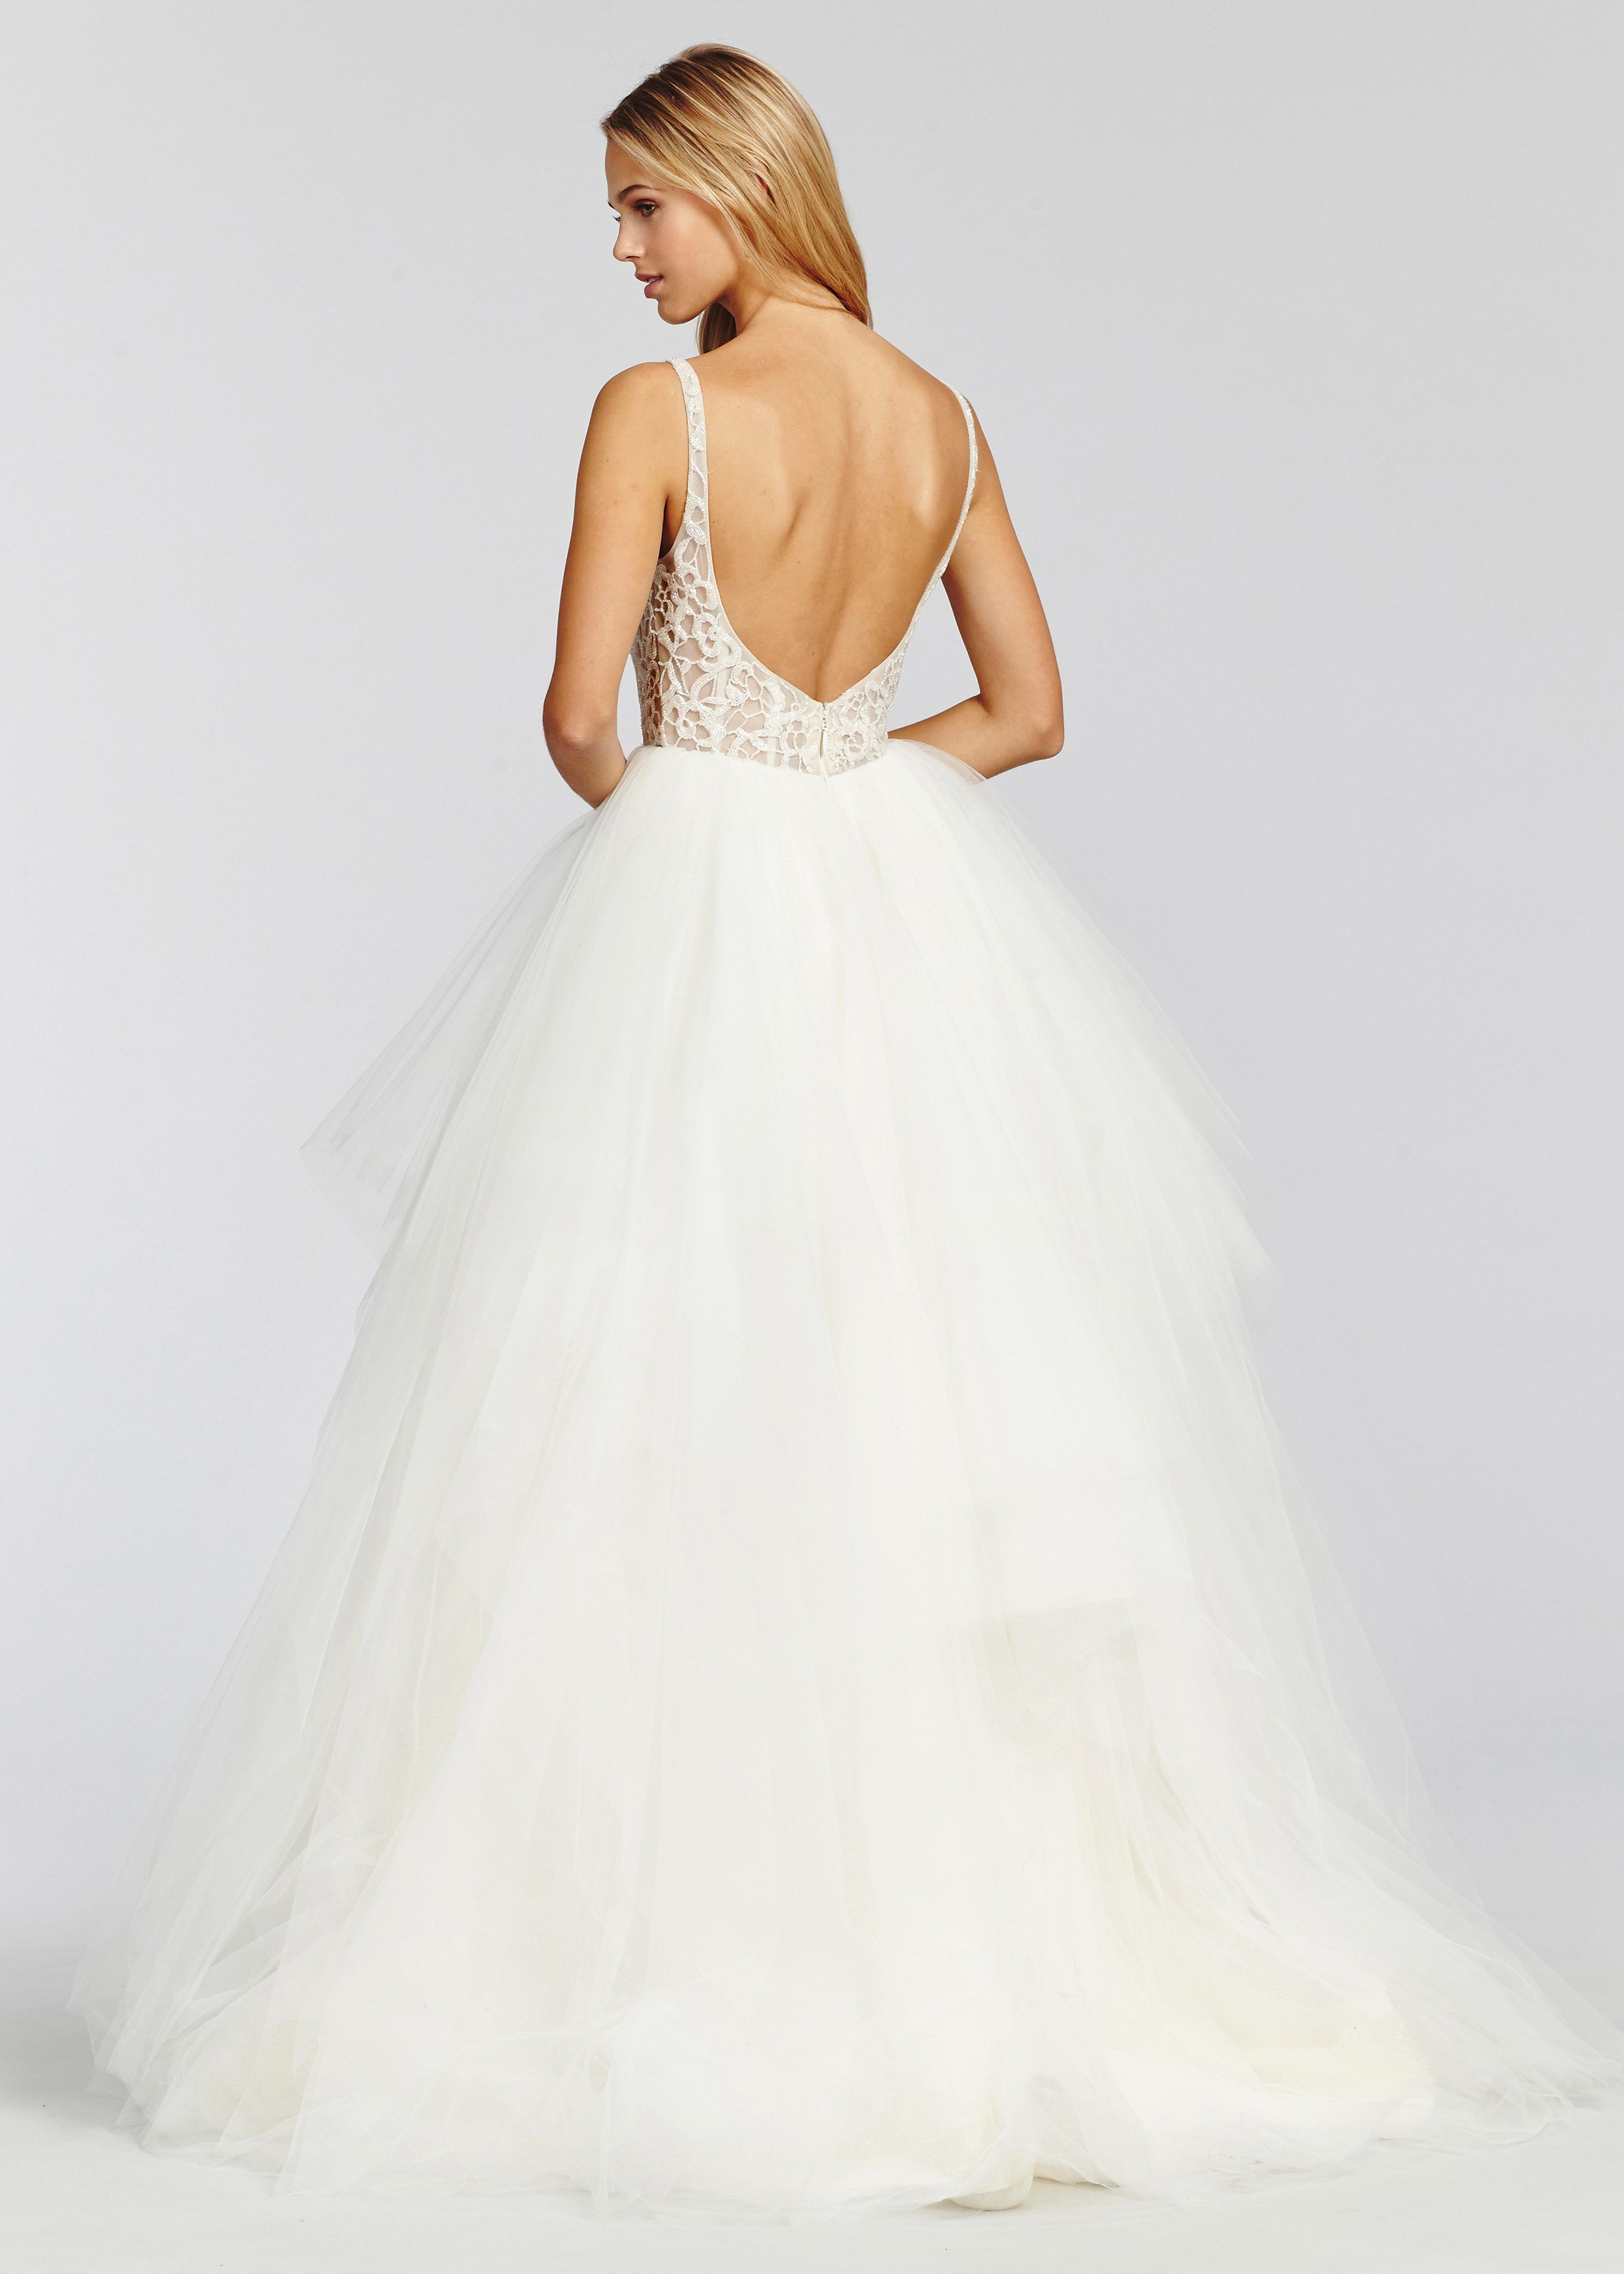 Bridal Gowns and Wedding Dresses by JLM Couture - Style 1657 Scout ...